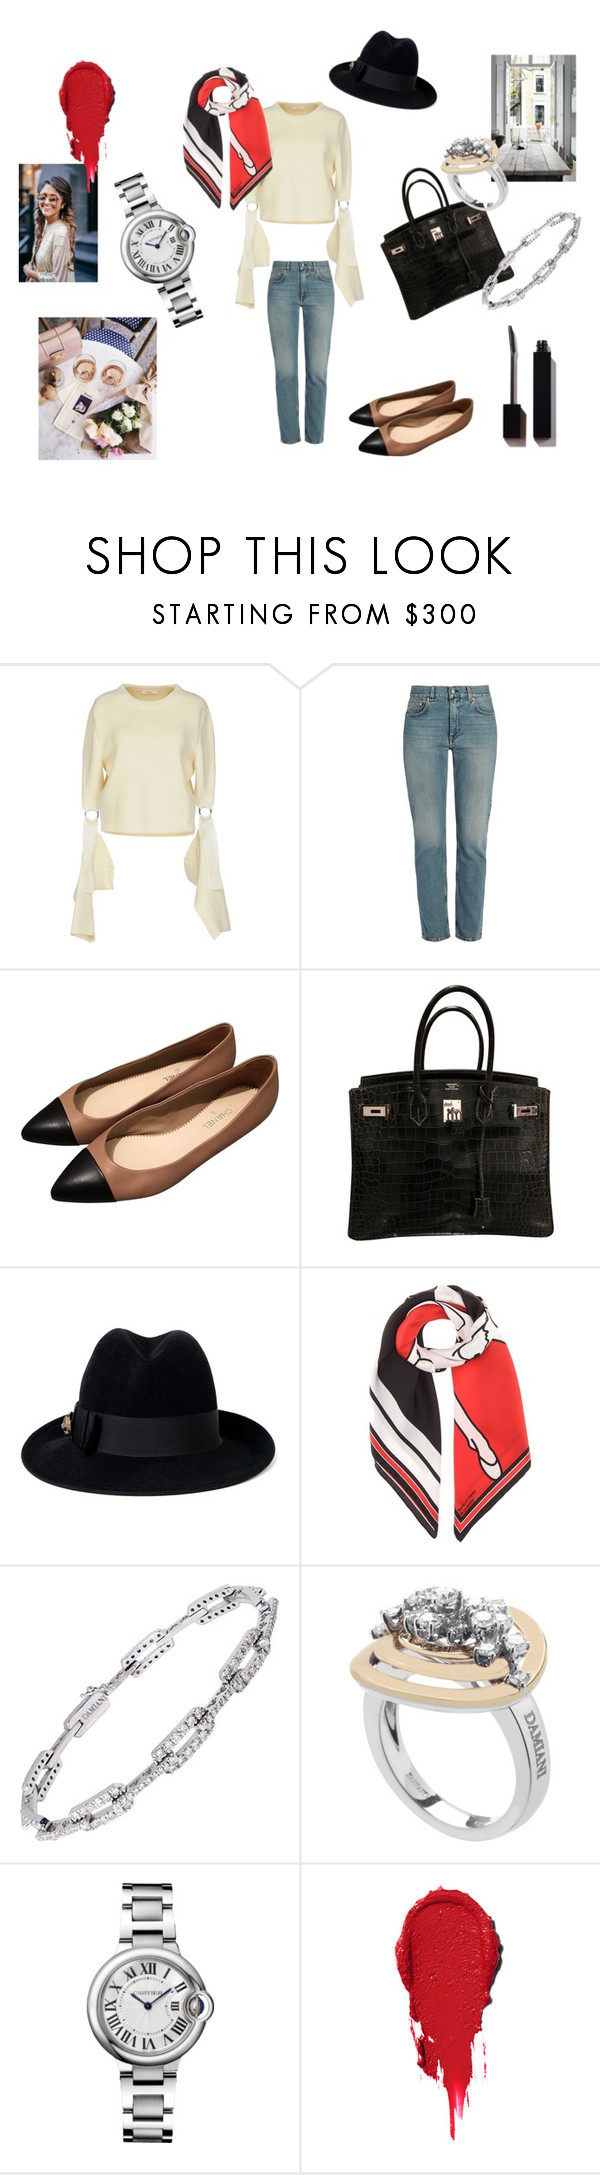 """So French with these flats"" by maria-chamourlidou ❤ liked on Polyvore featuring CÉLINE, Acne Studios, Chanel, Hermès, Gucci, Givenchy and Damiani"